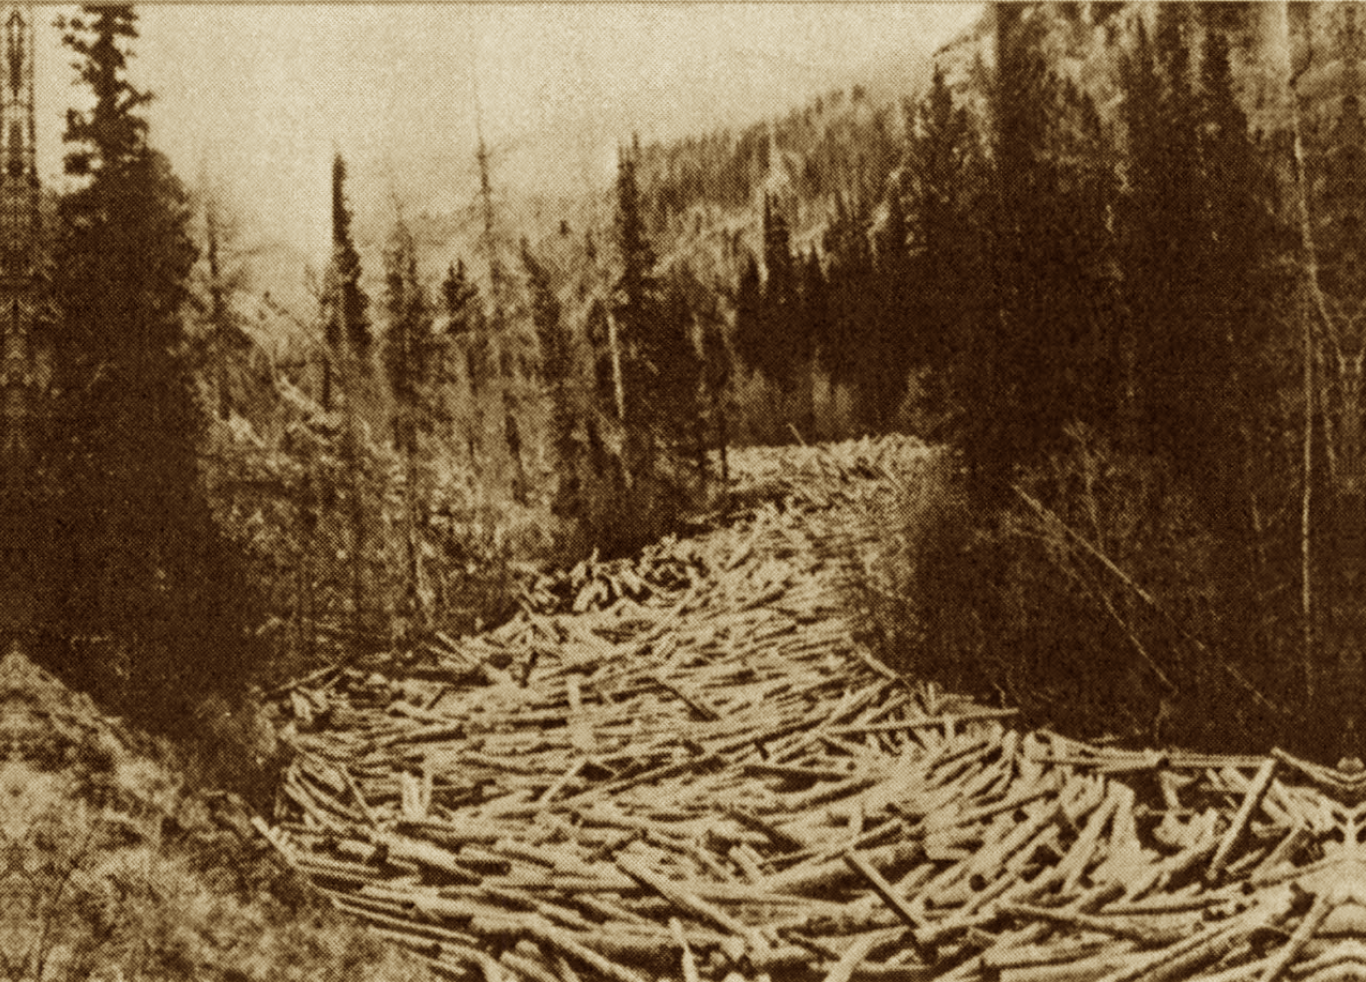 A log jam on the Medicine Bow River in Wyoming.